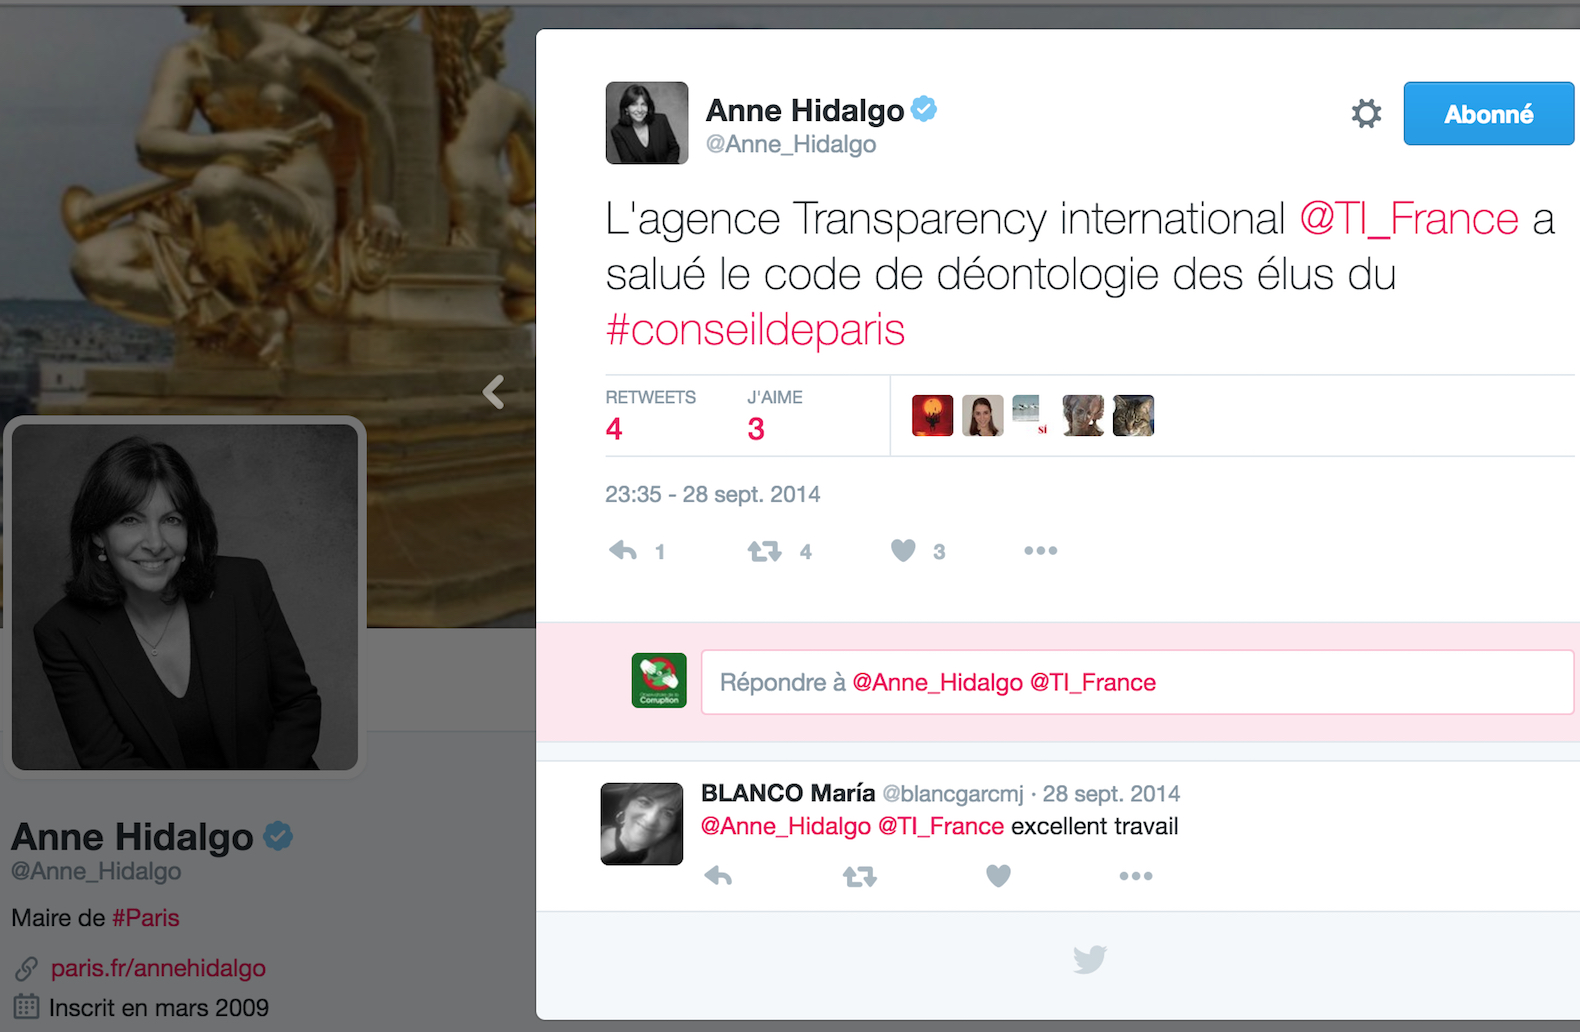 Anne Hidalgo Paris Transparency International France